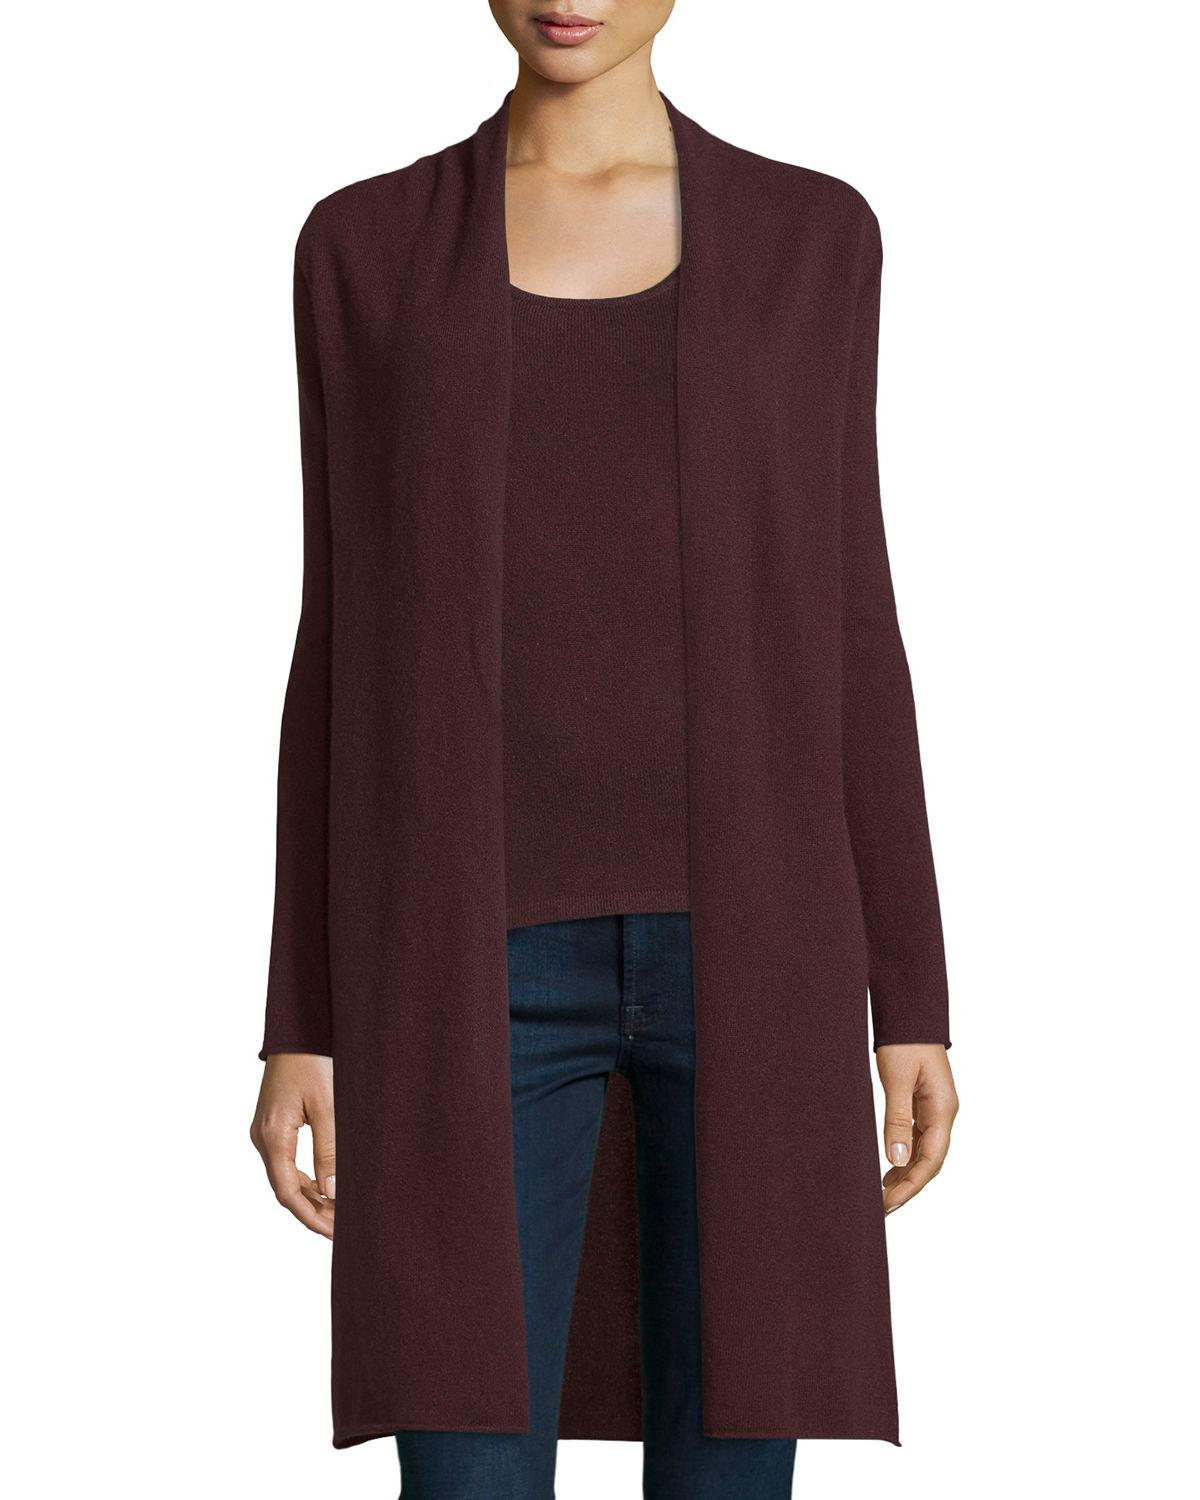 Neiman marcus Long Cashmere Duster Cardigan in Purple | Lyst